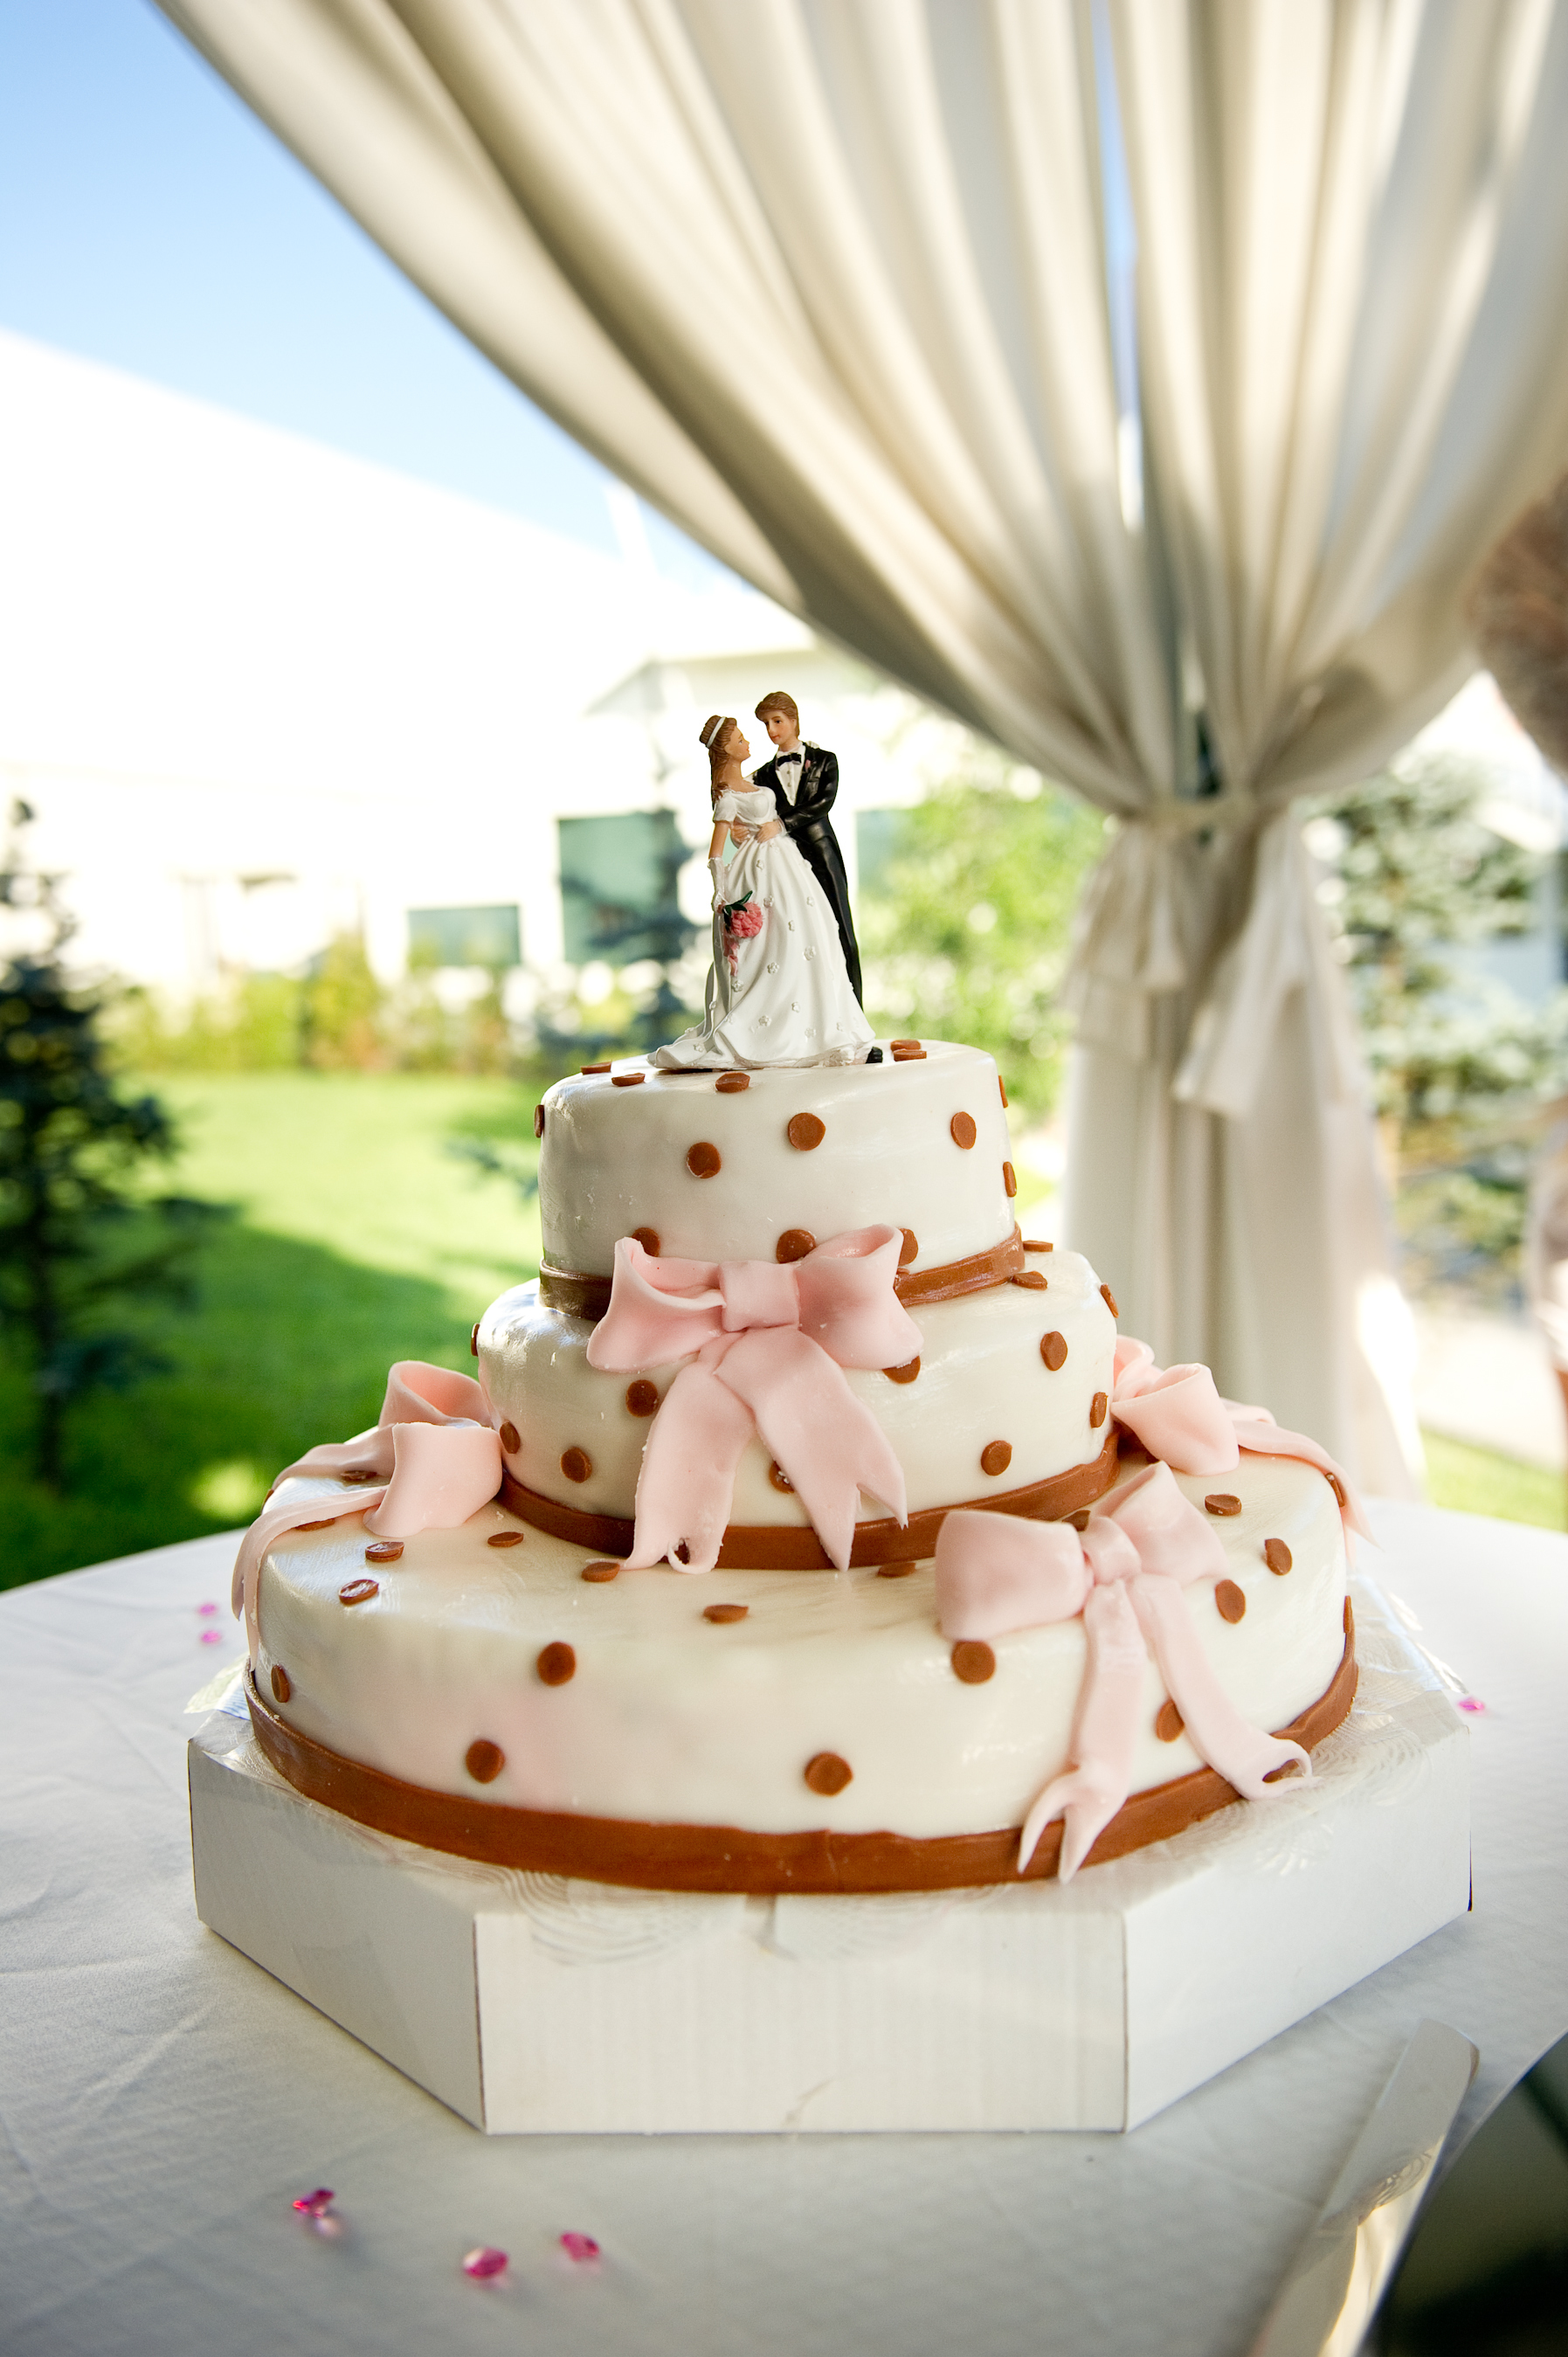 Cakes, white, ivory, pink, brown, cake, Wedding, Topper, Couple, Cream, Traditional, Dots, Bows, Dotted, Bowed